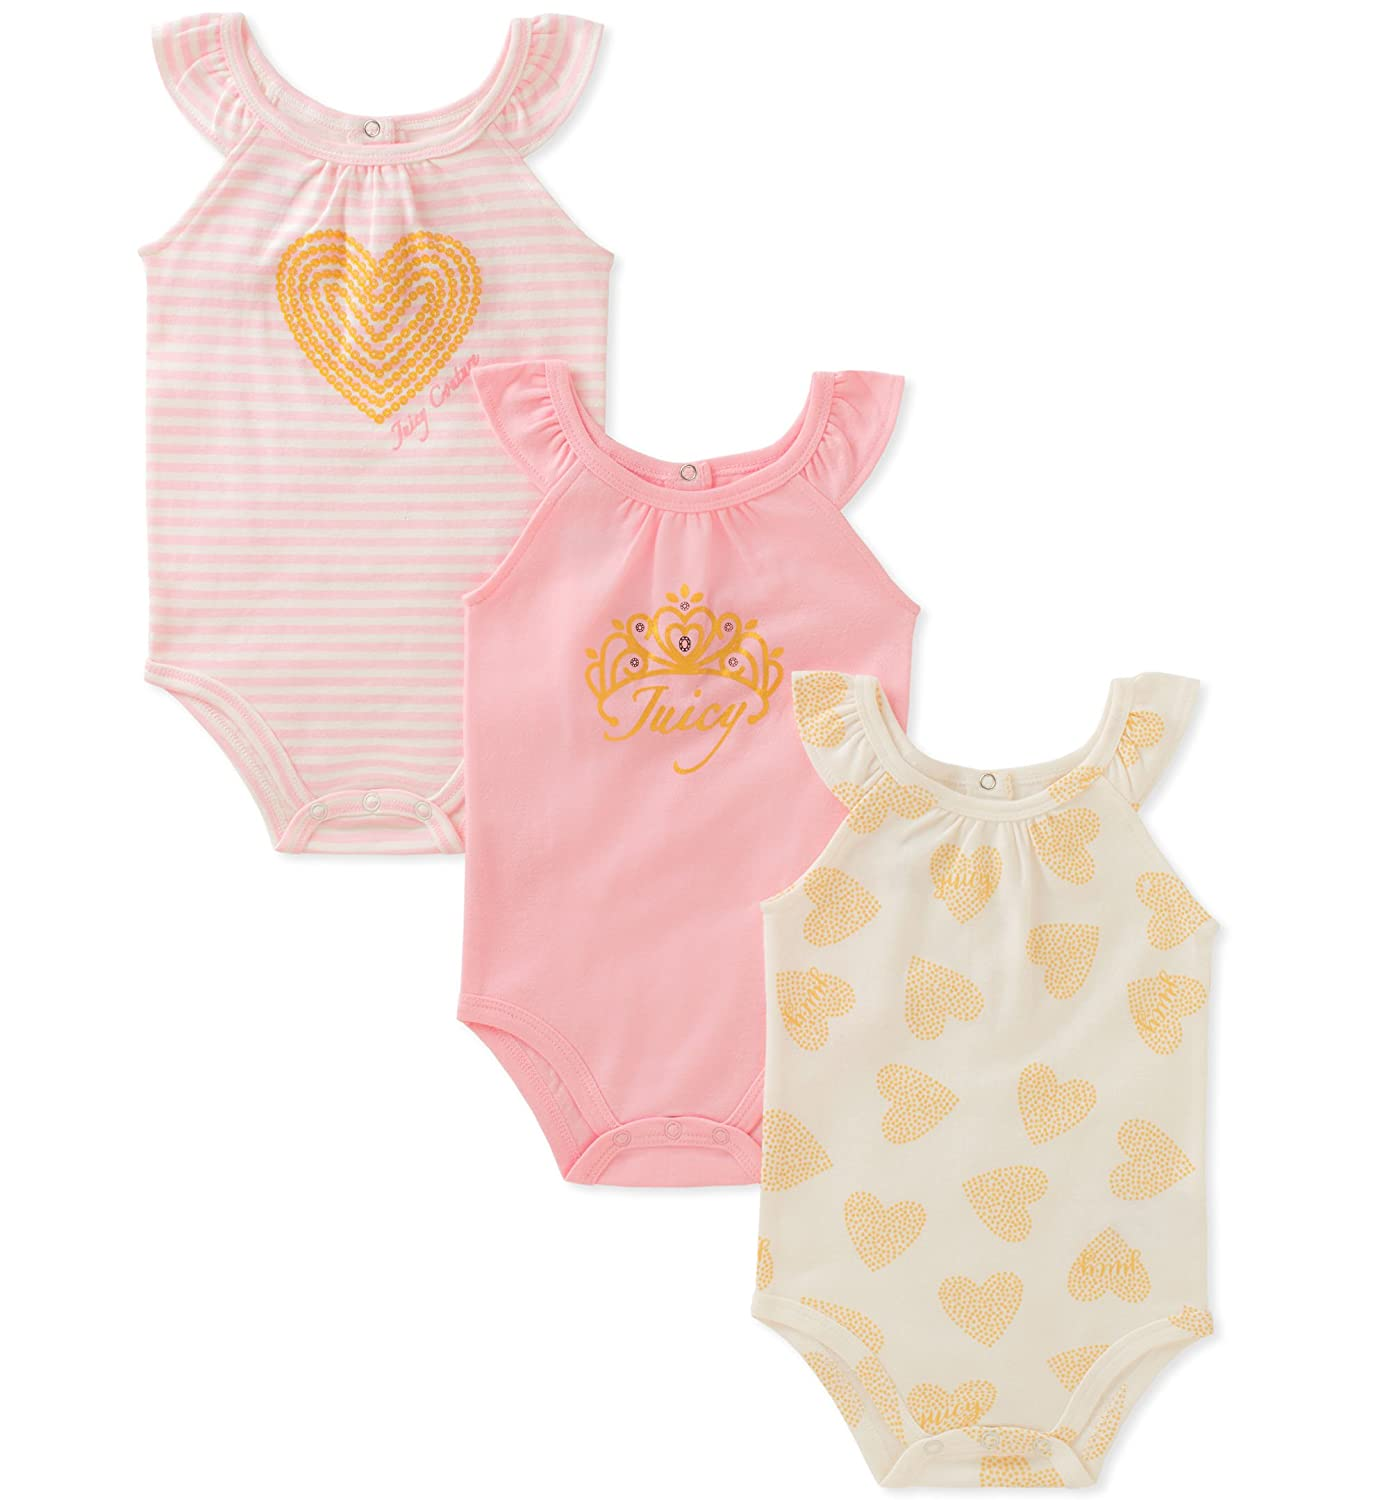 ae804cf31 Amazon.com  Juicy Couture Baby Girls 3 Packs Bodysuit  Clothing